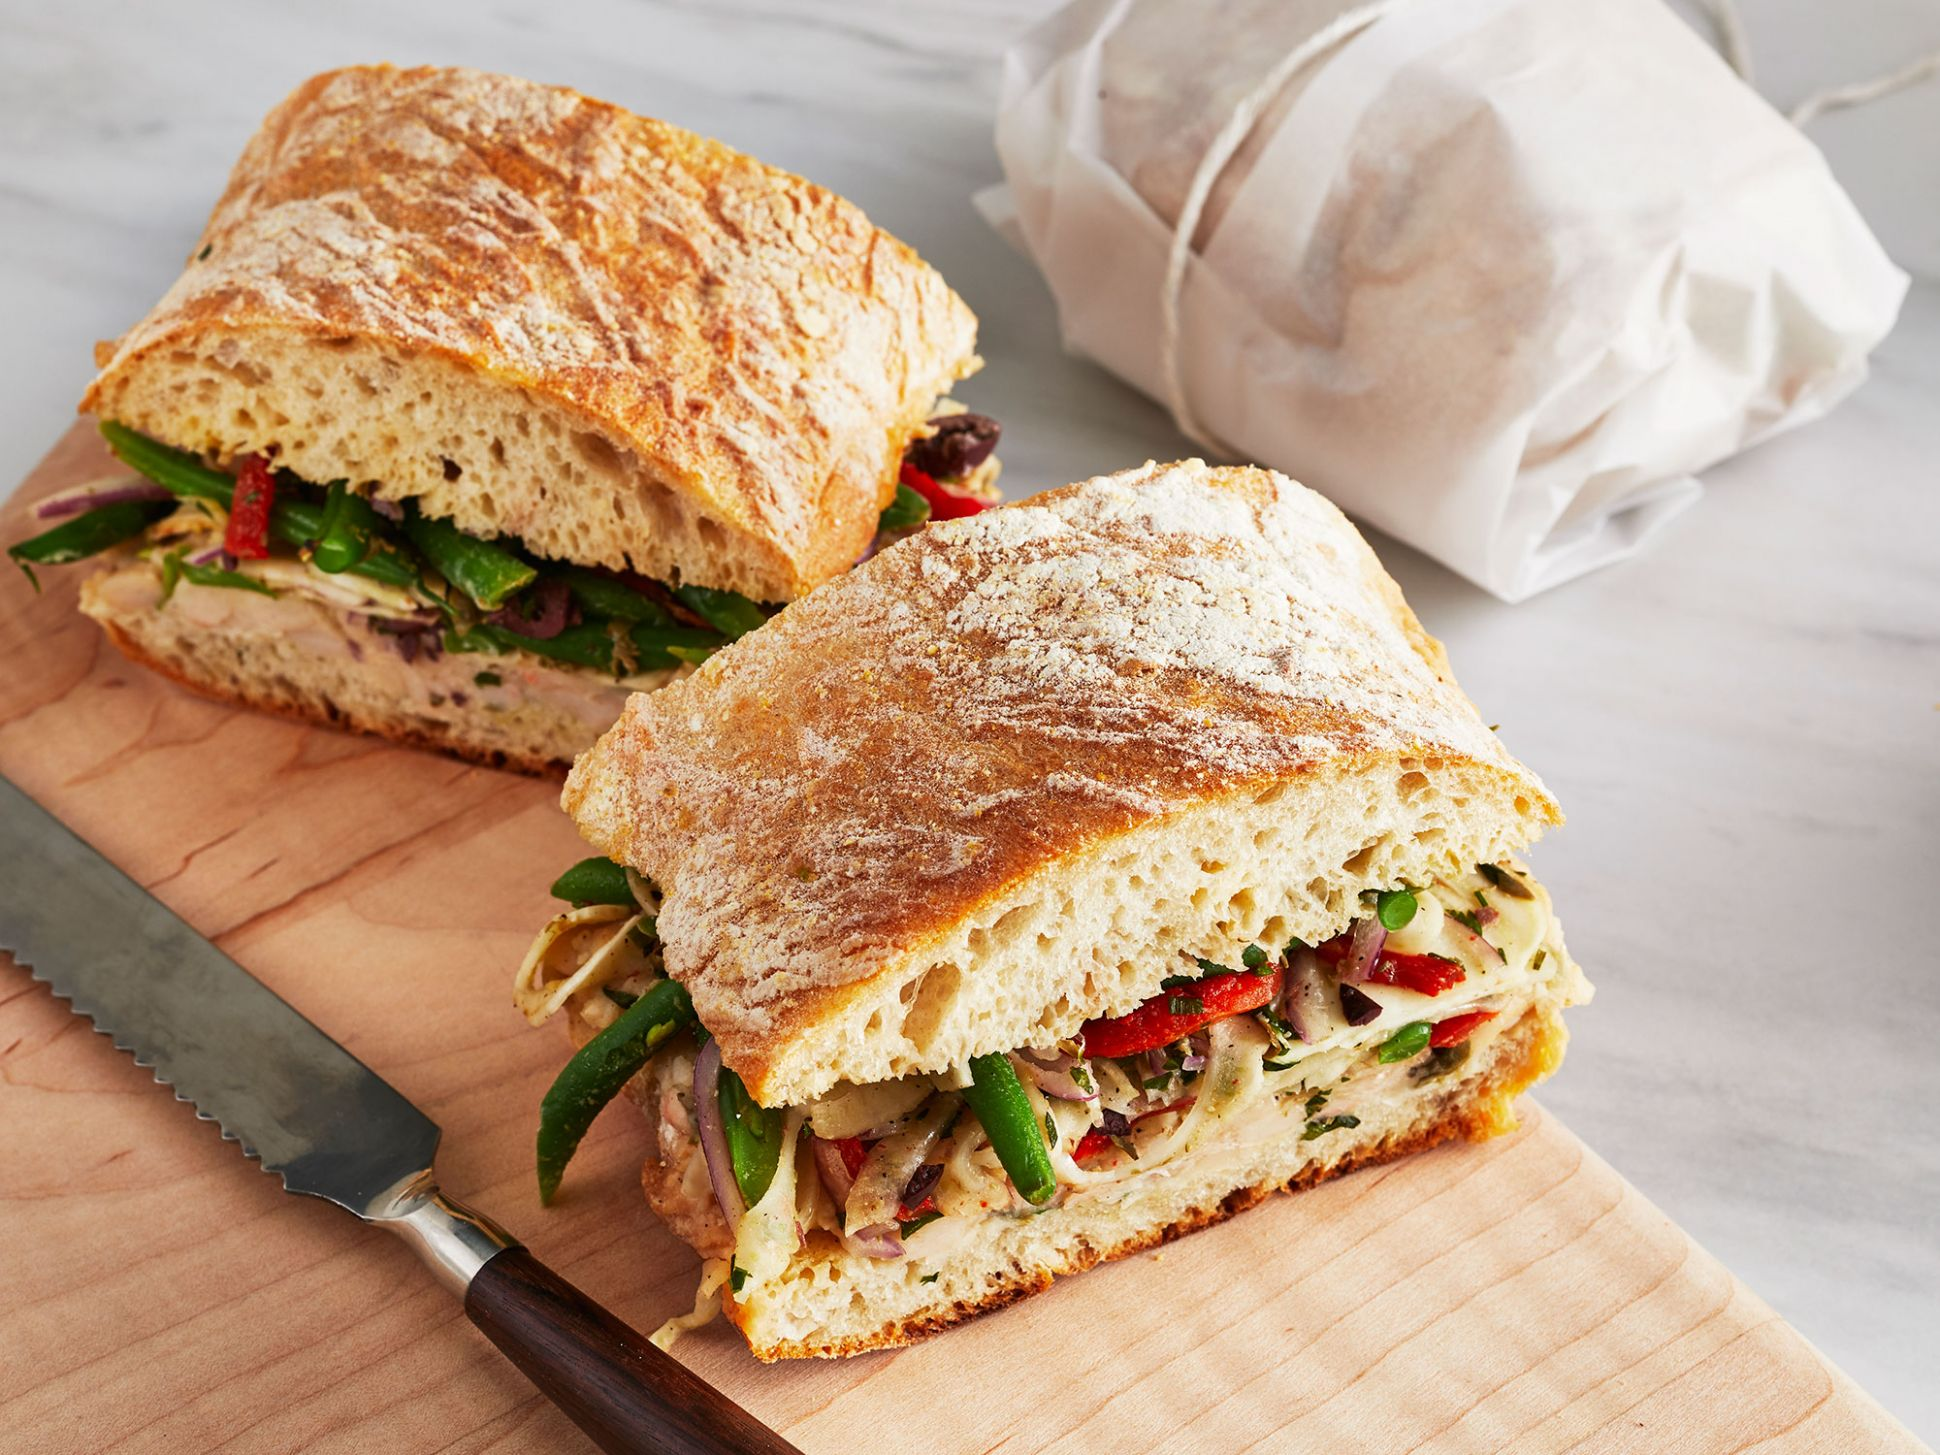 10 Healthy Sandwiches Ideas | Cooking Light - Sandwich Recipes Yummy